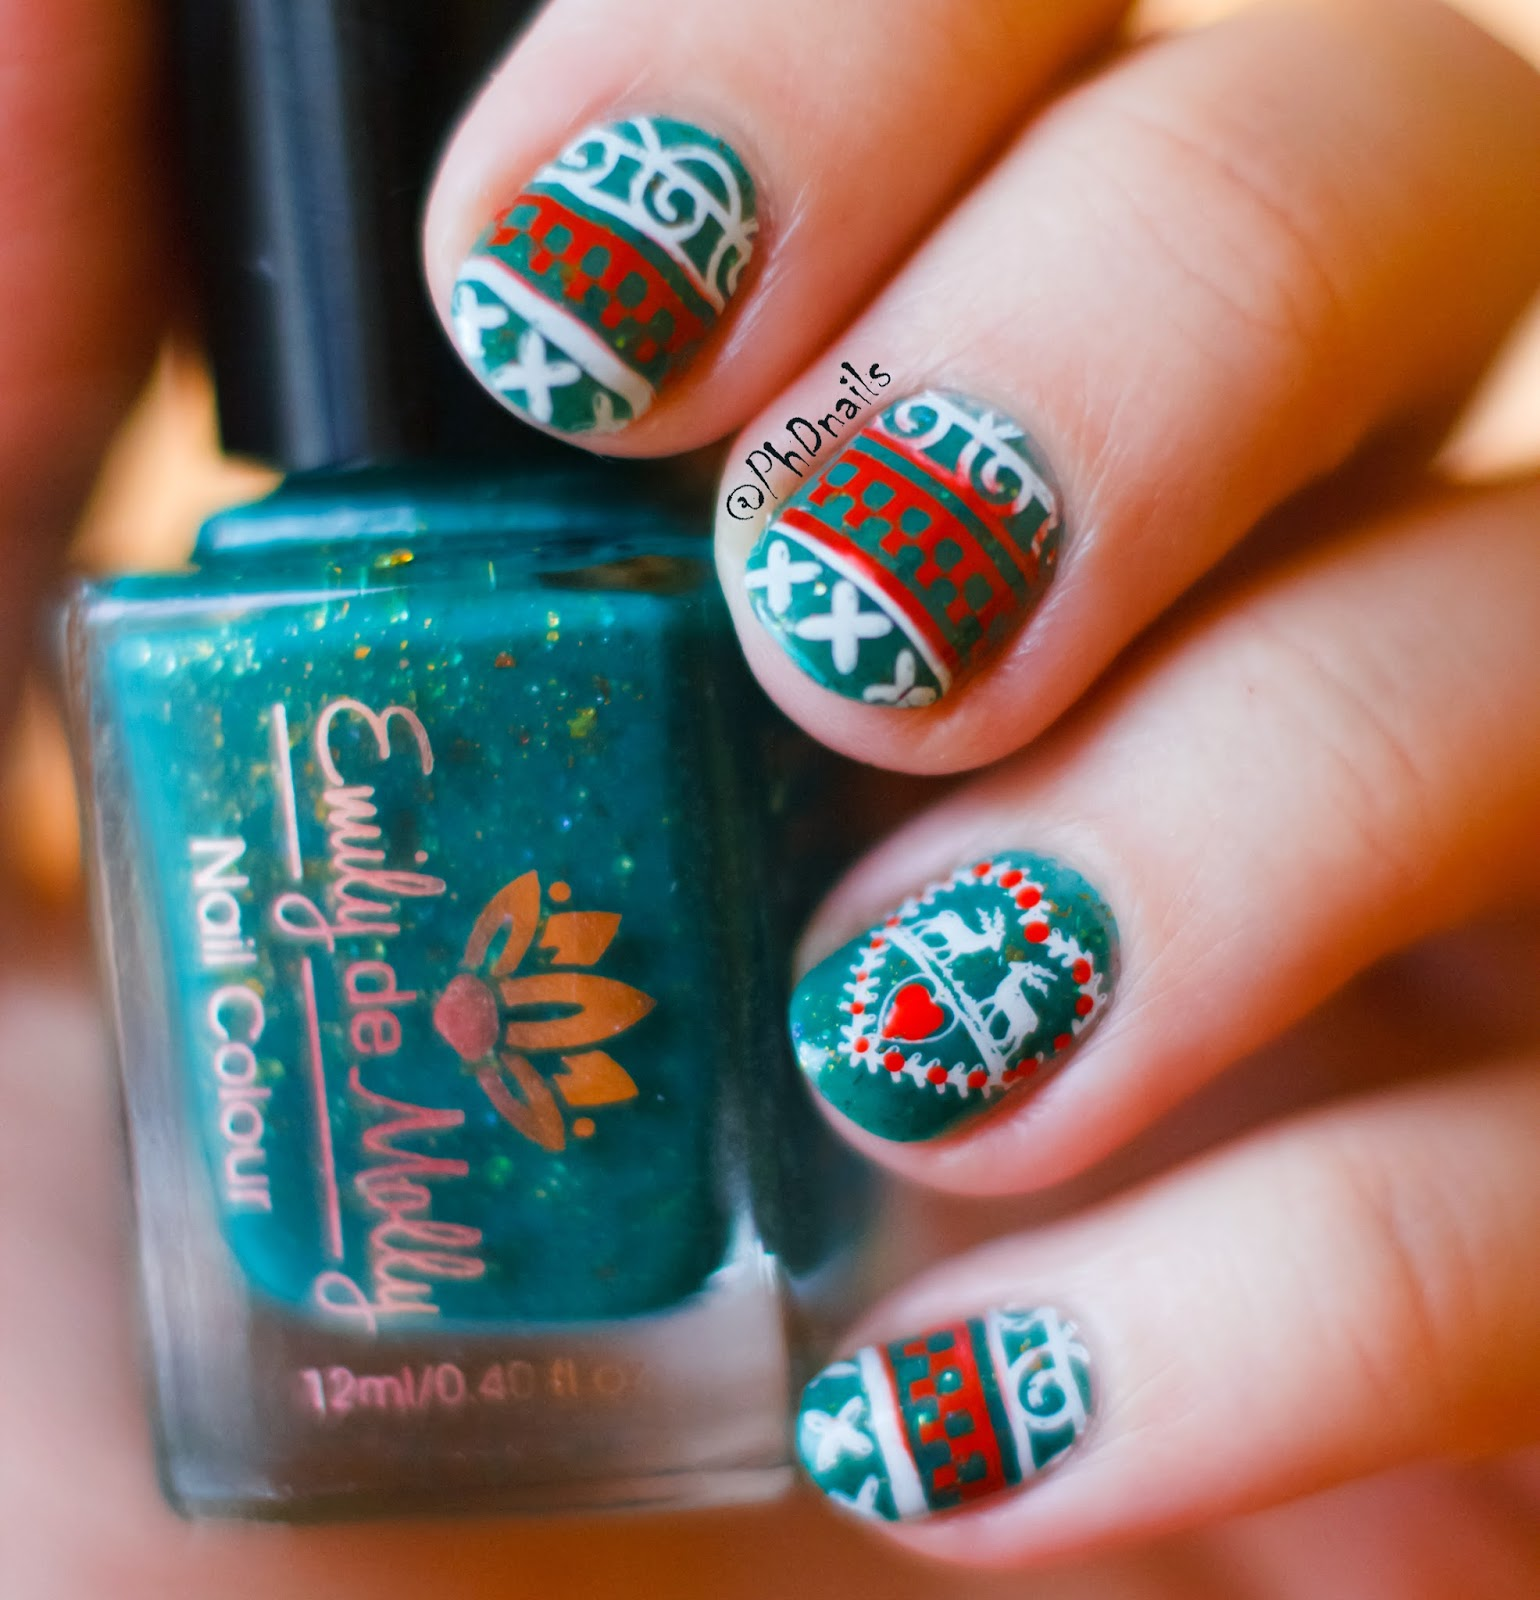 Phd Nails Challenge Your Nail Art Ugly Christmas Sweater Stamping